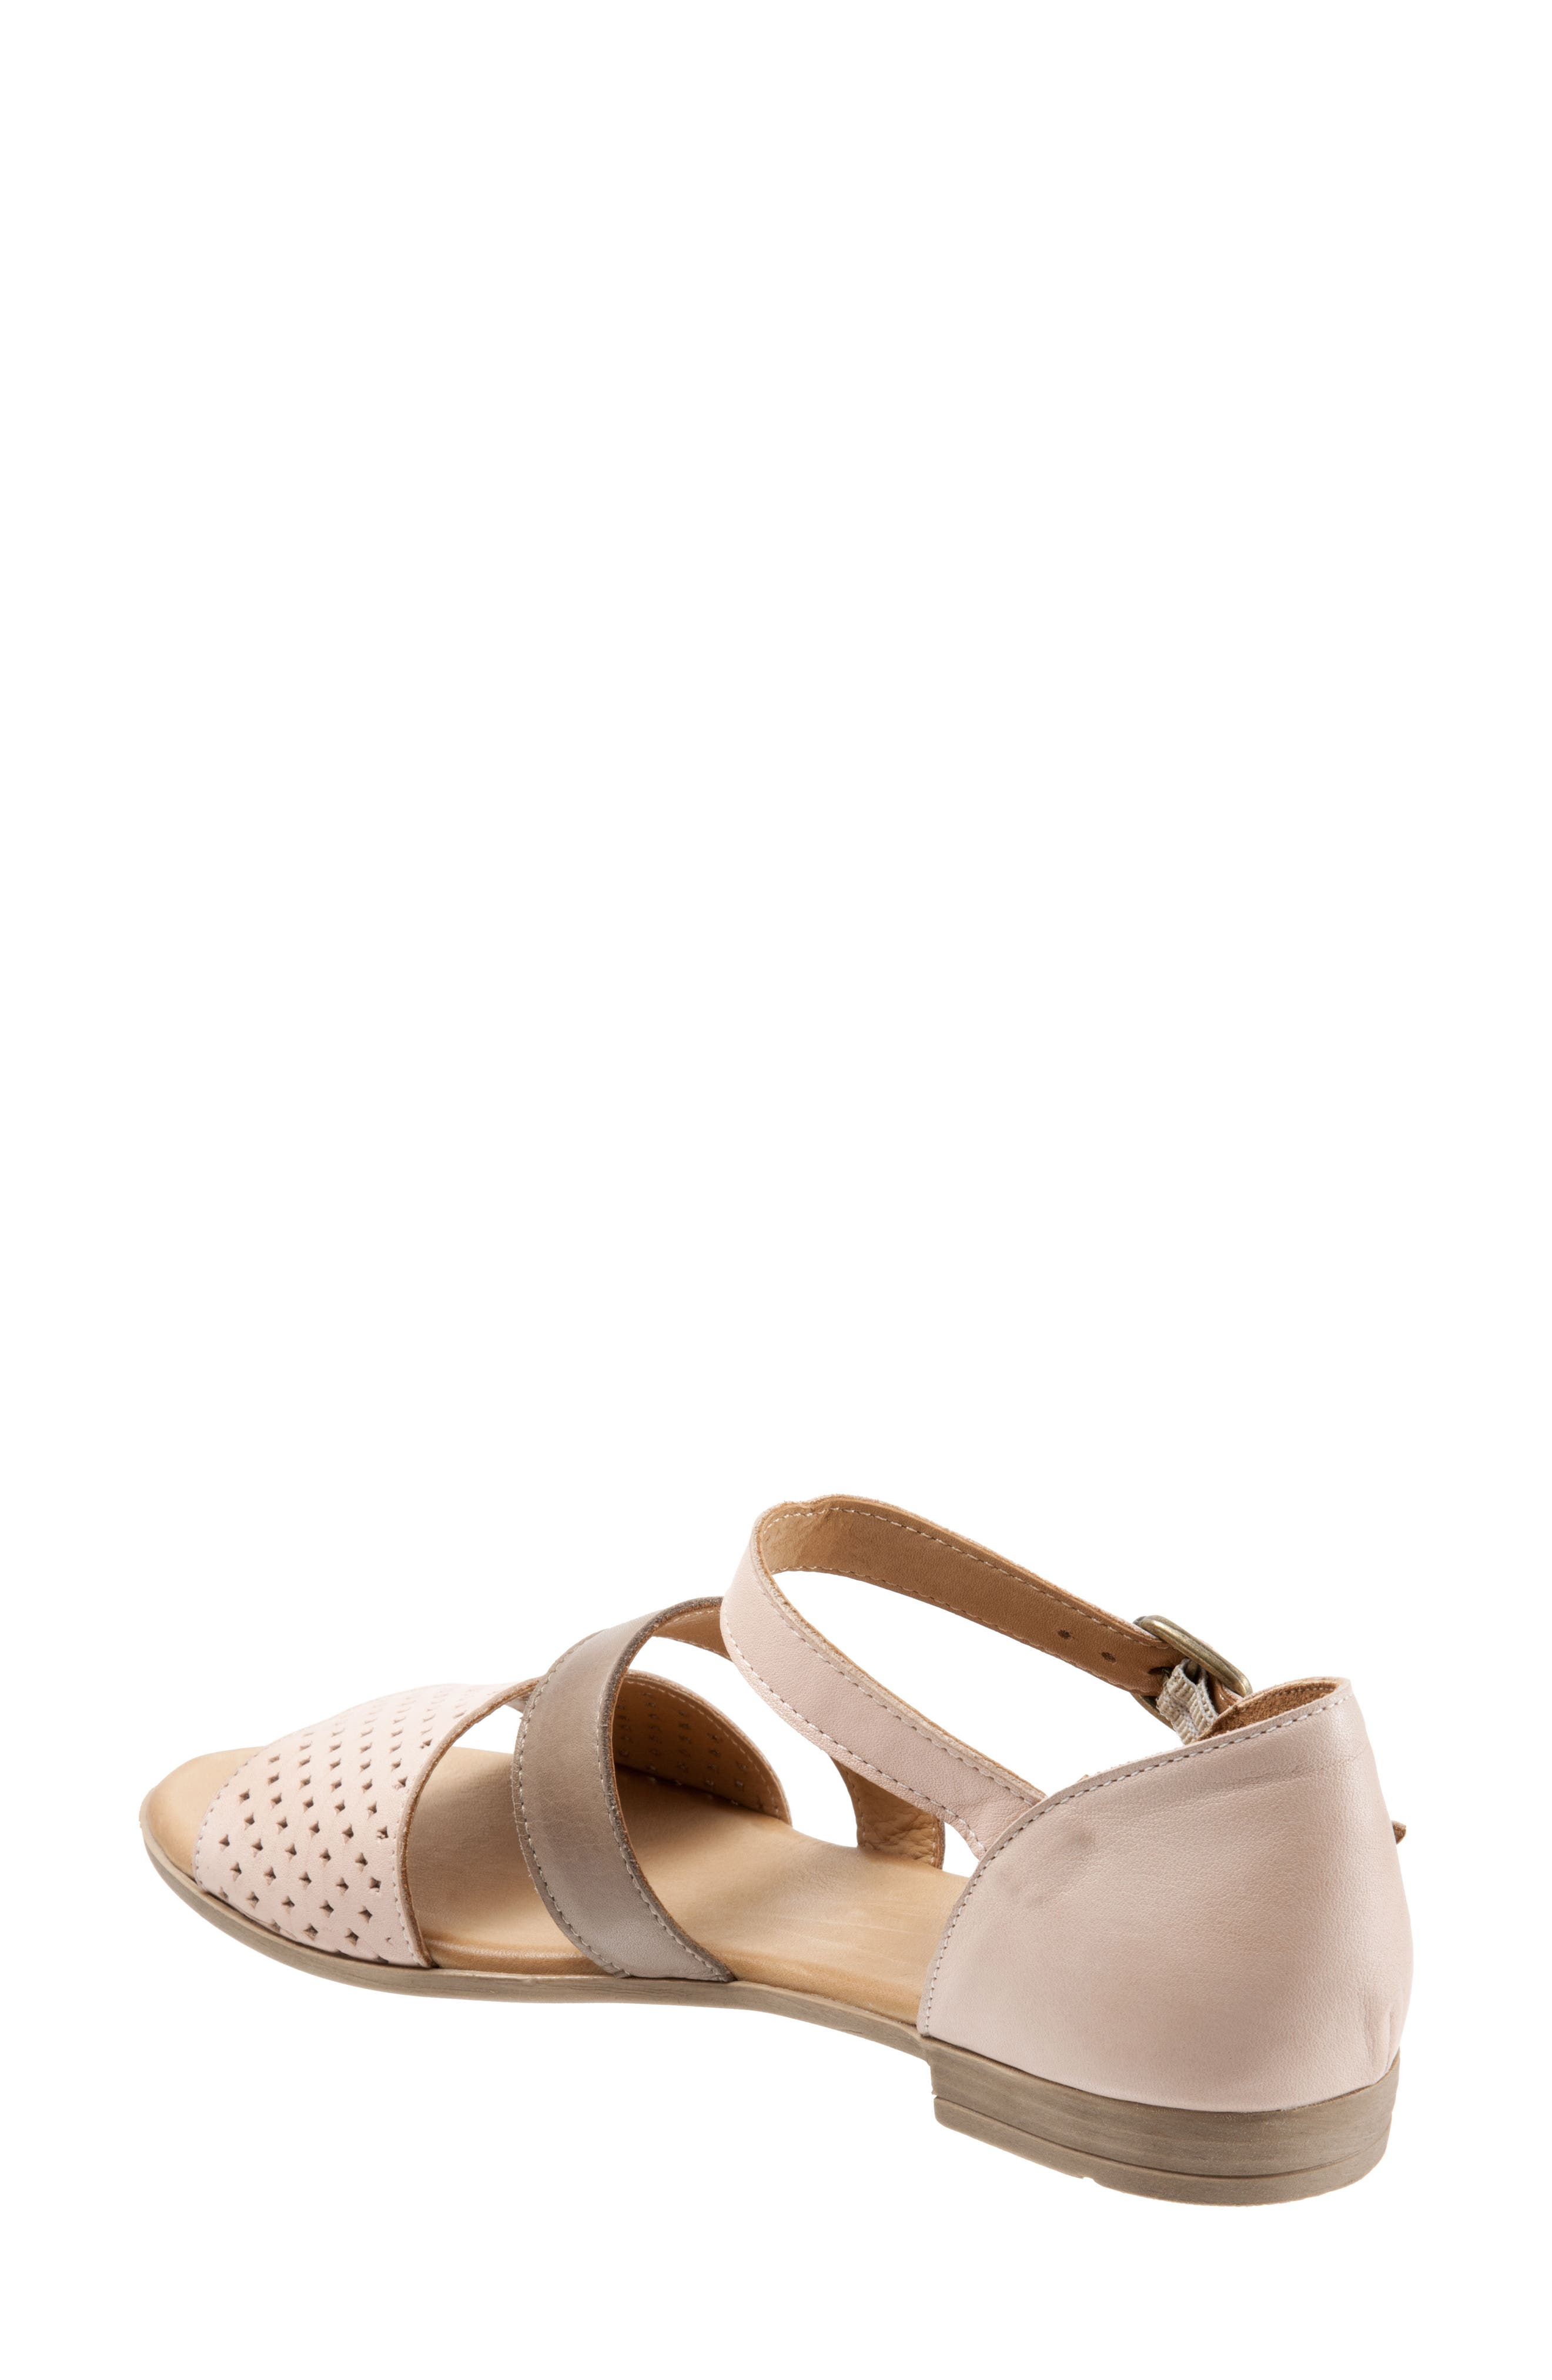 Janet Perforated Flat Sandal,                             Alternate thumbnail 2, color,                             Pale Pink Leather